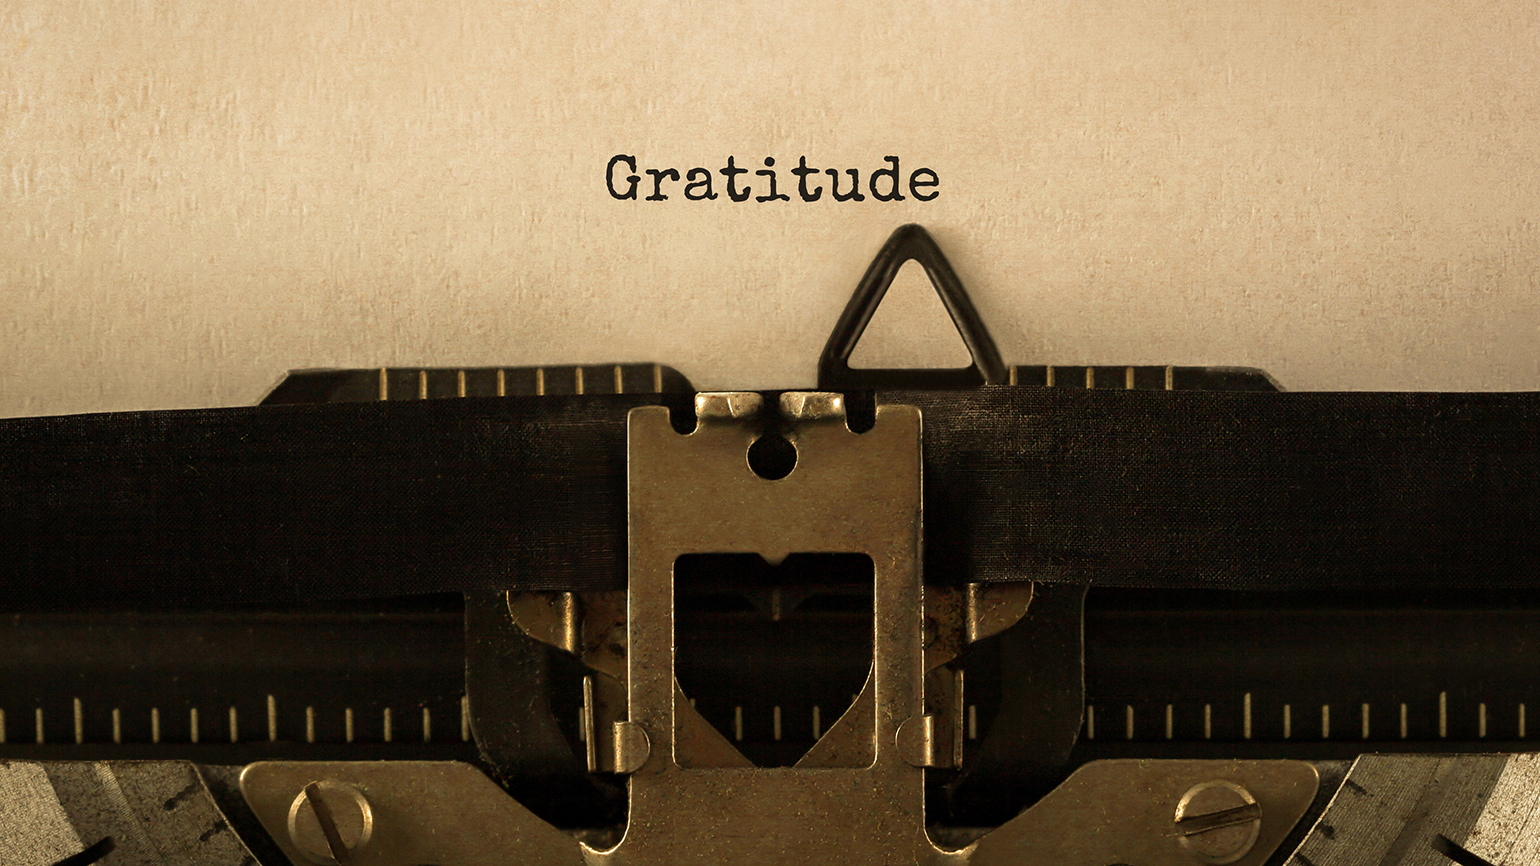 the word 'gratitude' typewritten on a page